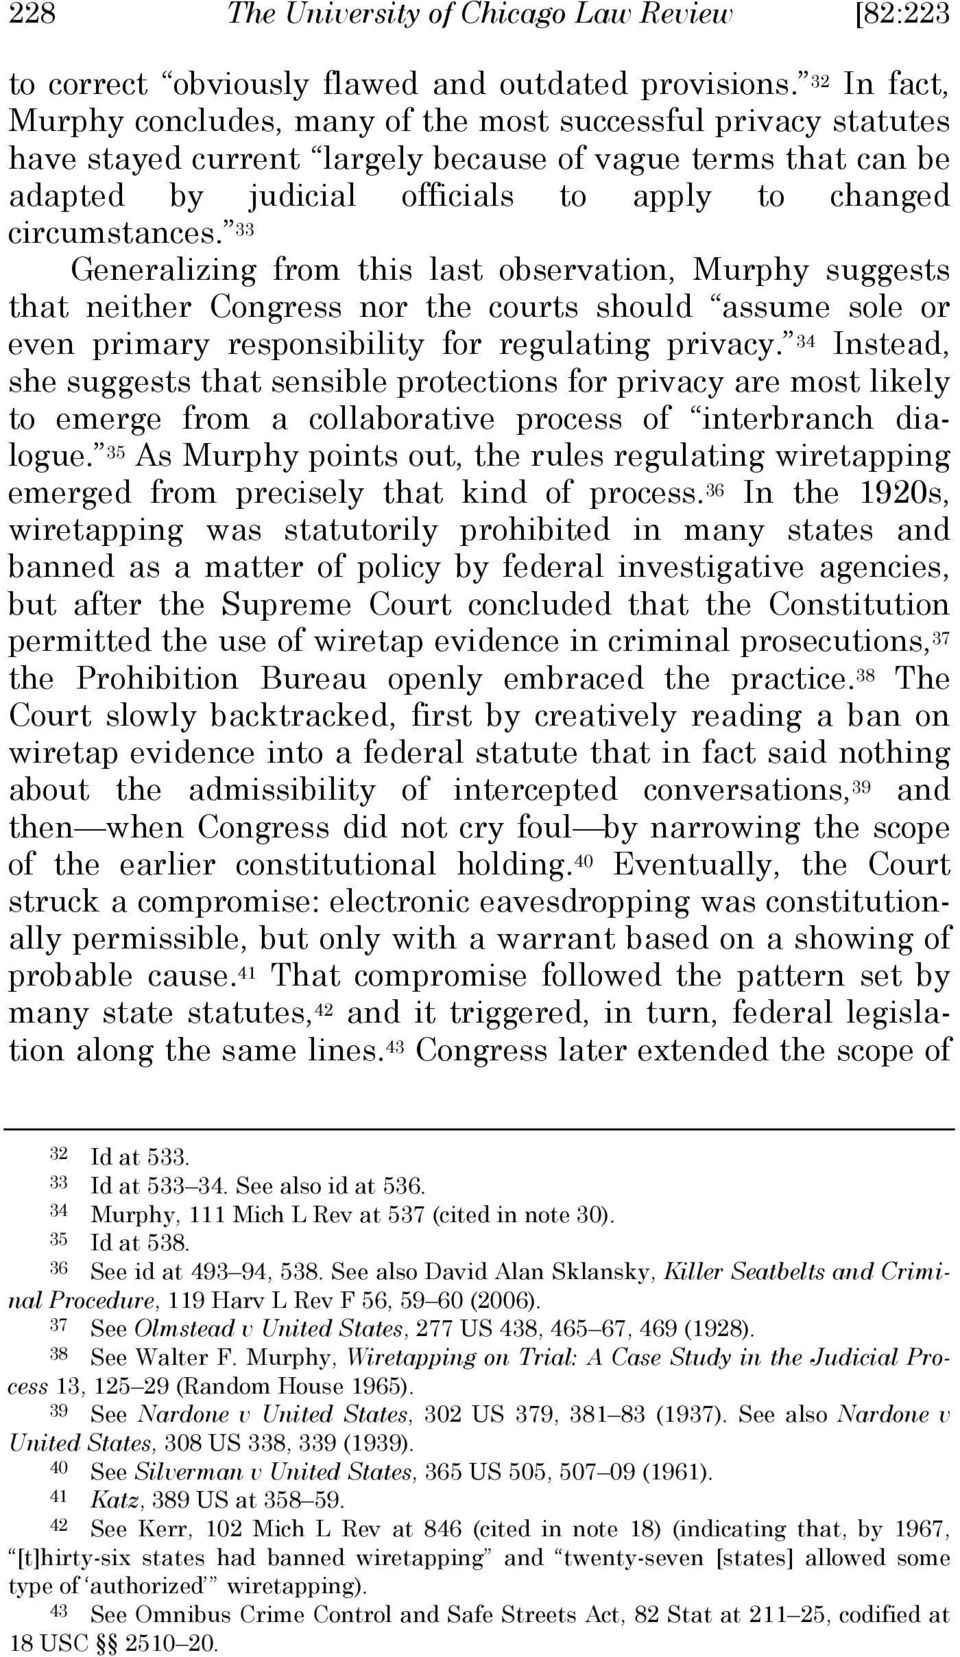 circumstances. 33 Generalizing from this last observation, Murphy suggests that neither Congress nor the courts should assume sole or even primary responsibility for regulating privacy.